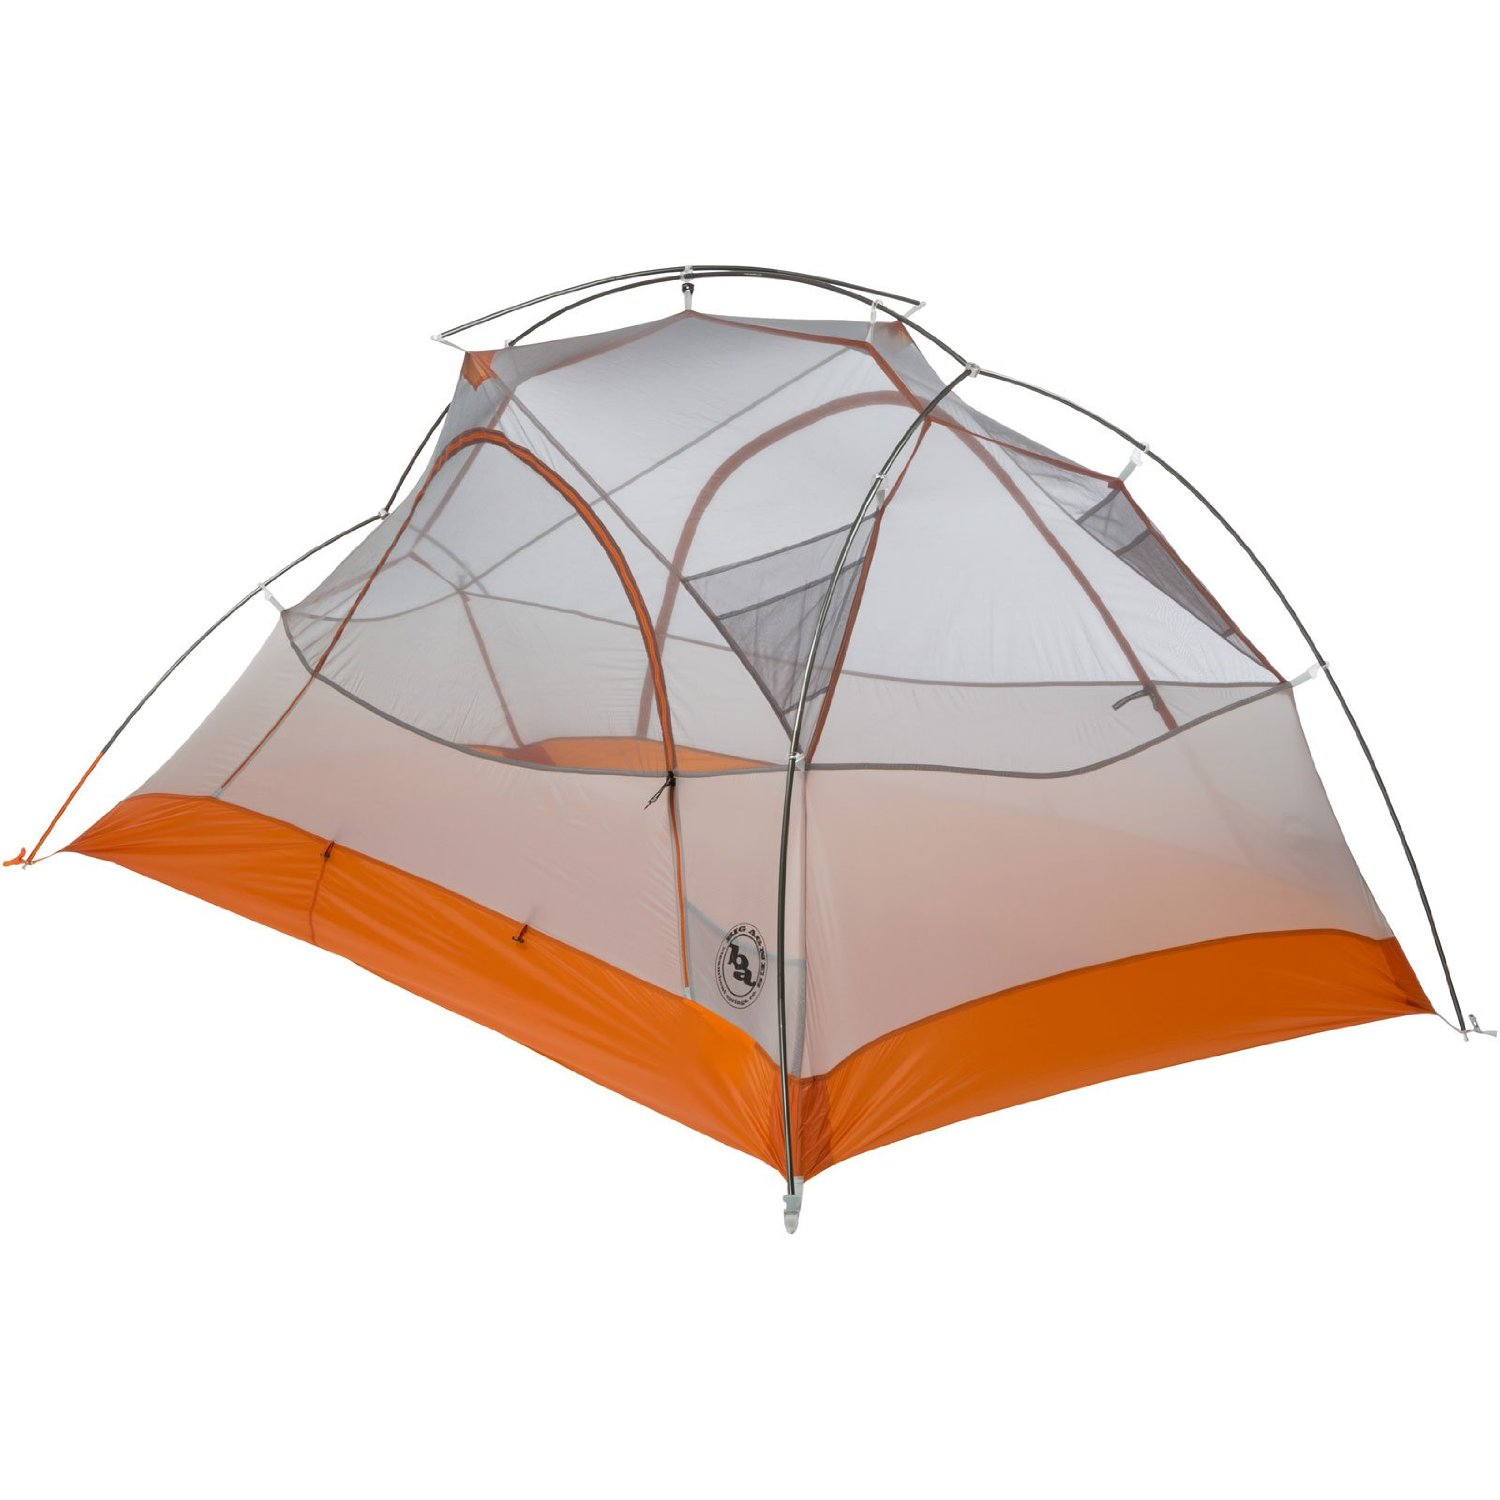 Big Agnes Copper Spur UL2 Camping Tent for Two